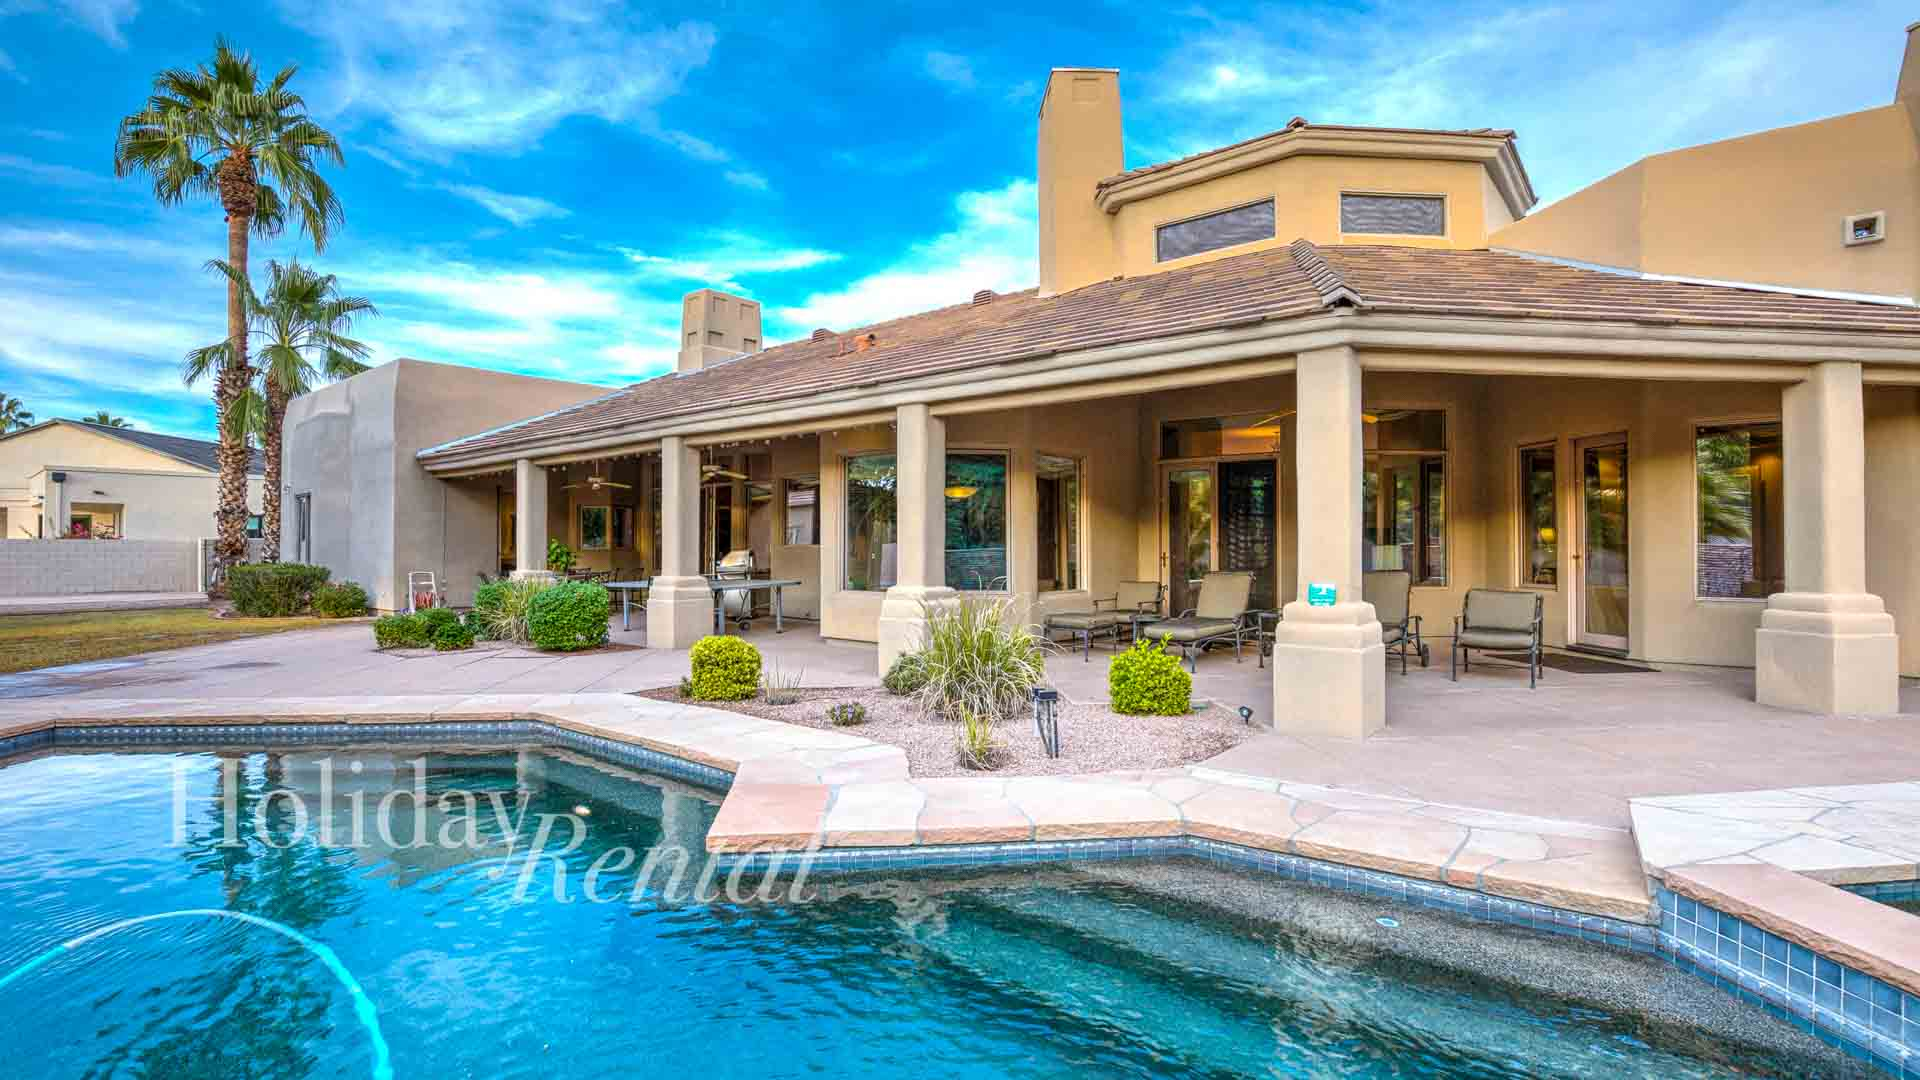 Great Scottsdale Rental - 6 bedrooms w/ Guest House has Private Tennis Court